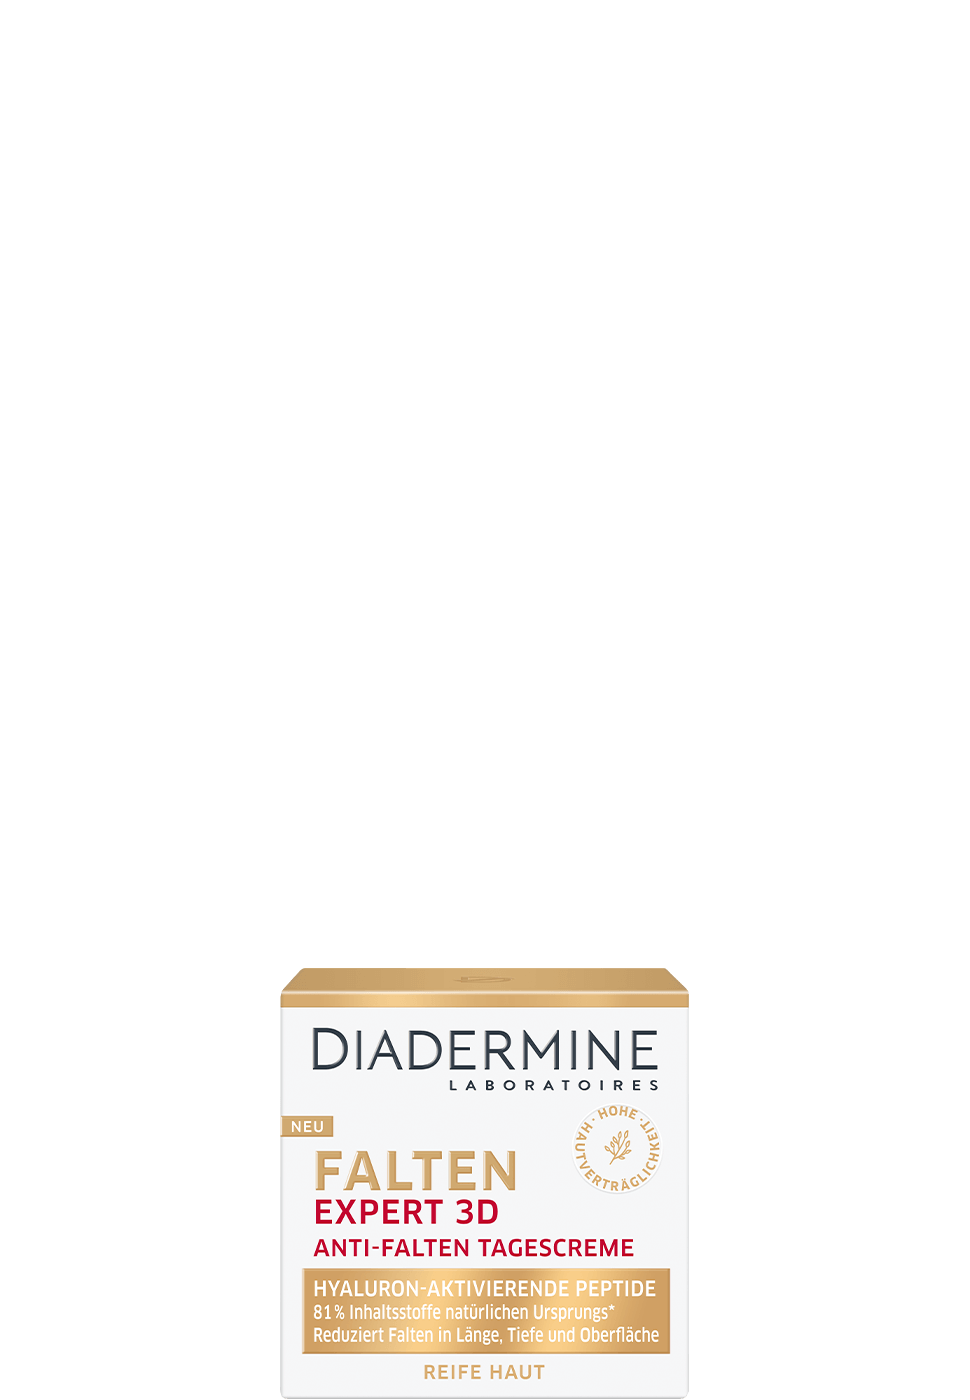 diadermine_at_falten_expert_tagescreme_970x1400